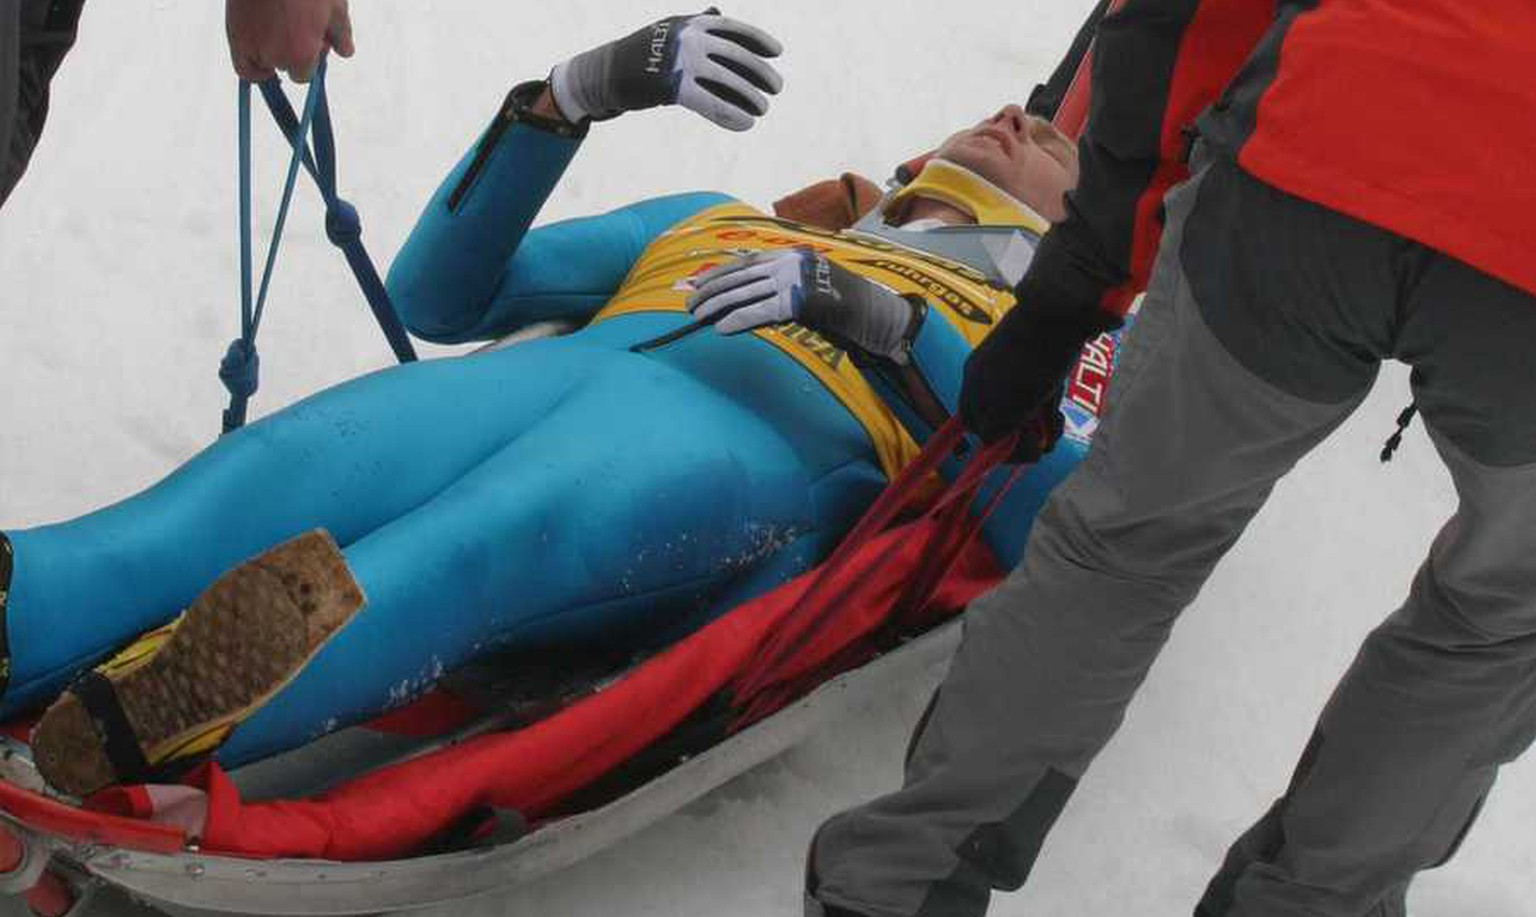 Overall World Cup  winner Janne Ahonen of Finland is carried away after a bad landing during the World Cup Ski Jumping competition in Planica, Slovenia, Sunday, March 20, 2005. Ahonen jumped 240 meters, but crashed while landing. (AP Photo/Filip Horvat)